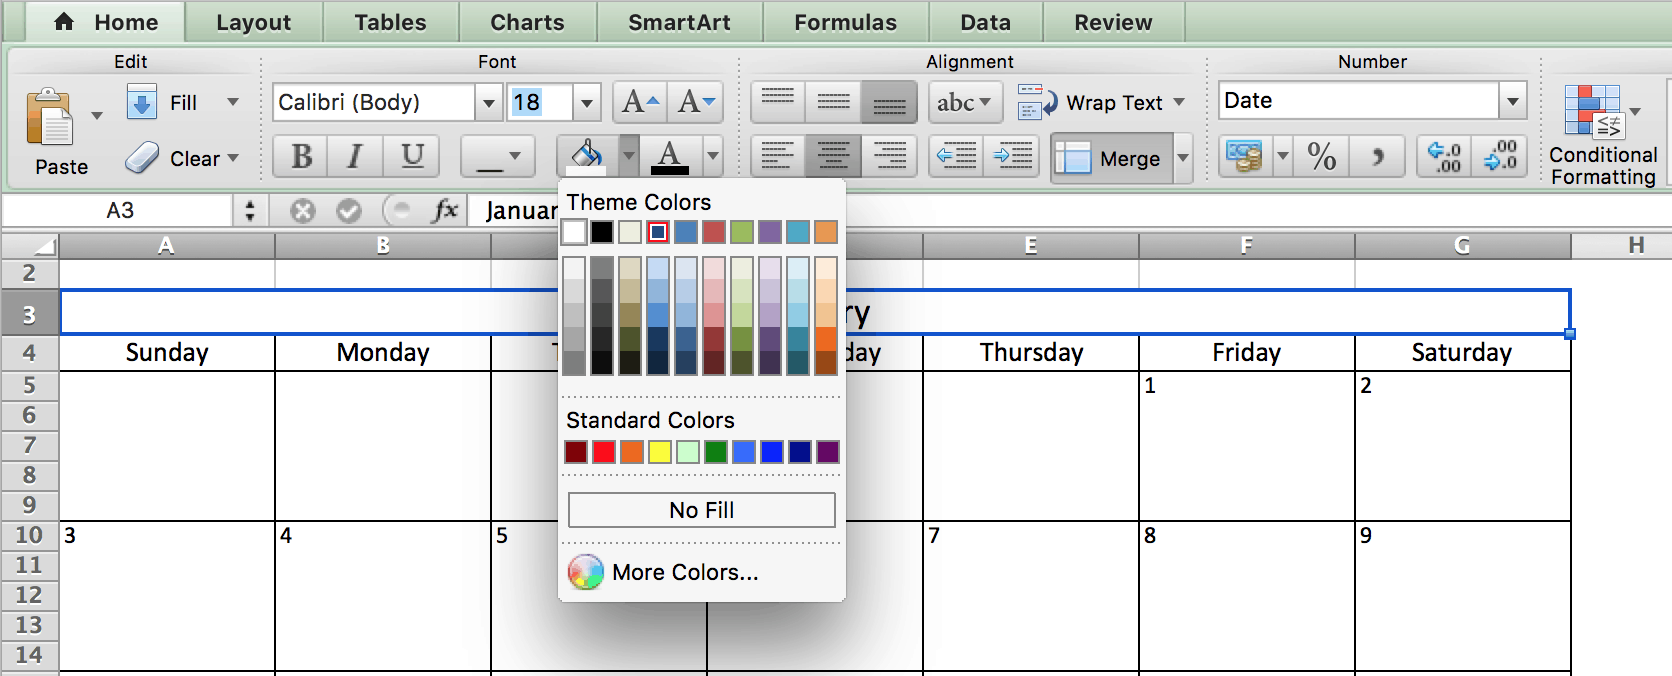 Ediblewildsus  Nice Make A  Calendar In Excel Includes Free Template With Lovely Choosing Colors  Calendar In Excel With Endearing Median Excel Also Excel Shortcut Delete Row In Addition Make A Drop Down List In Excel And Microsoft Excel Trial As Well As Draw Line In Excel Additionally How To Divide Two Cells In Excel From Smartsheetcom With Ediblewildsus  Lovely Make A  Calendar In Excel Includes Free Template With Endearing Choosing Colors  Calendar In Excel And Nice Median Excel Also Excel Shortcut Delete Row In Addition Make A Drop Down List In Excel From Smartsheetcom